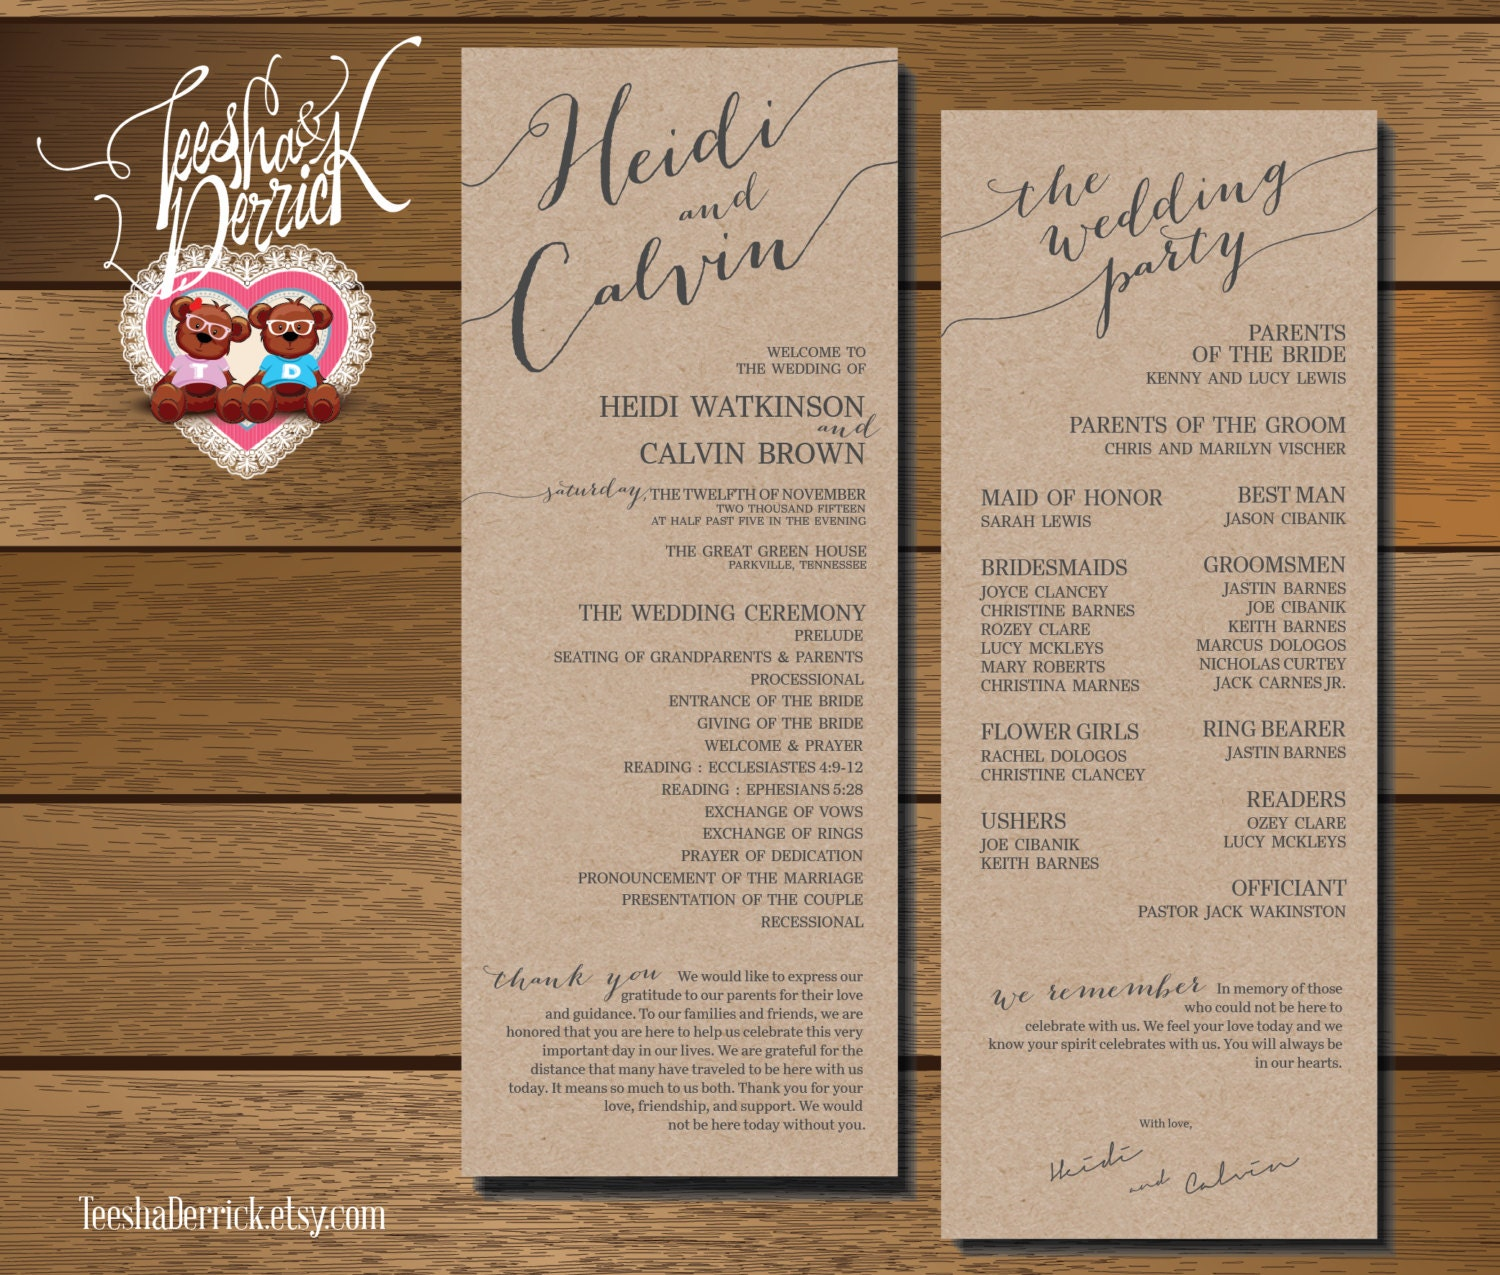 Printable Wedding Program And Ceremony Order In By. Outline Example For Essay Template. Online Calendar July 2018 Template. Magazine Article Template Microsoft Word Template. 50th Birthday Party Invitation Template. Data Warehousing Resume Sample. Sample Of Resume Of Teacher Template. Types Of Hooks For Essays Template. Printable Monthly Expense Tracker Template